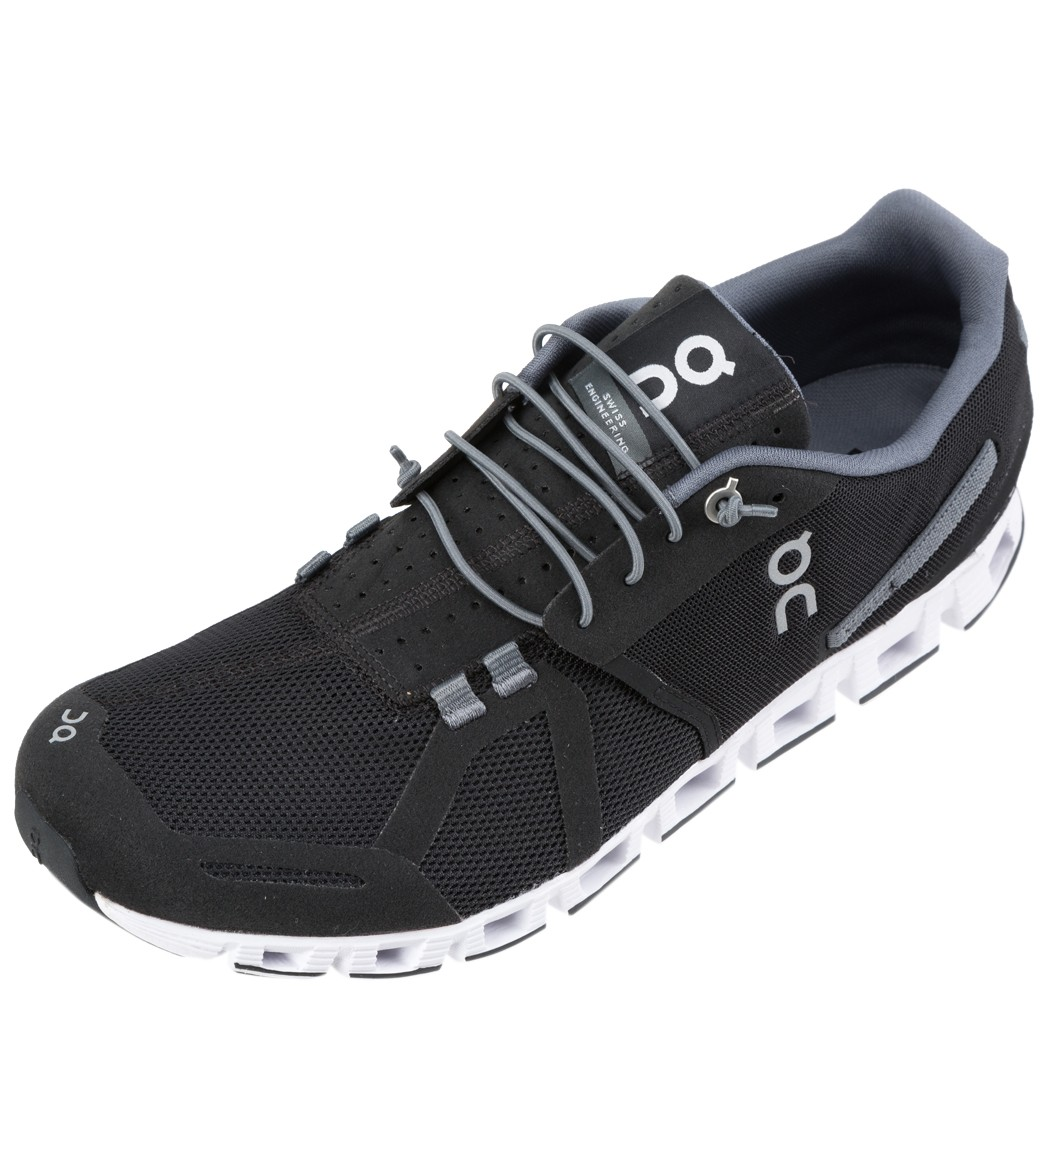 2951081c0e4b On Men s Cloud Running Shoes at SwimOutlet.com - Free Shipping